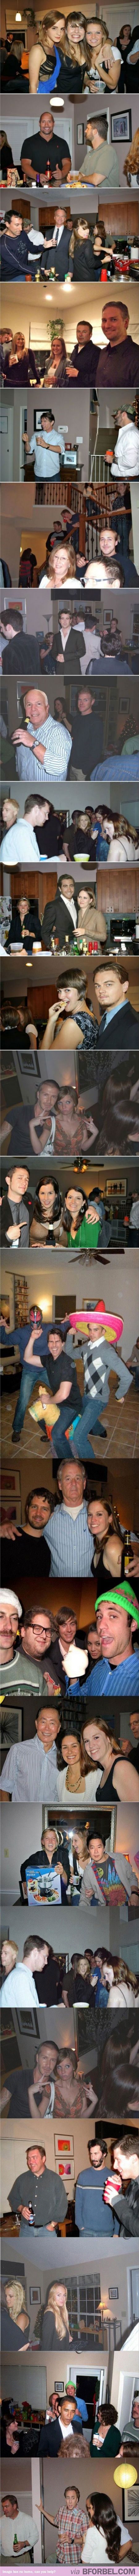 Photoshopping celebrities into your party pictures. Partying with Emma Watson, everyone!